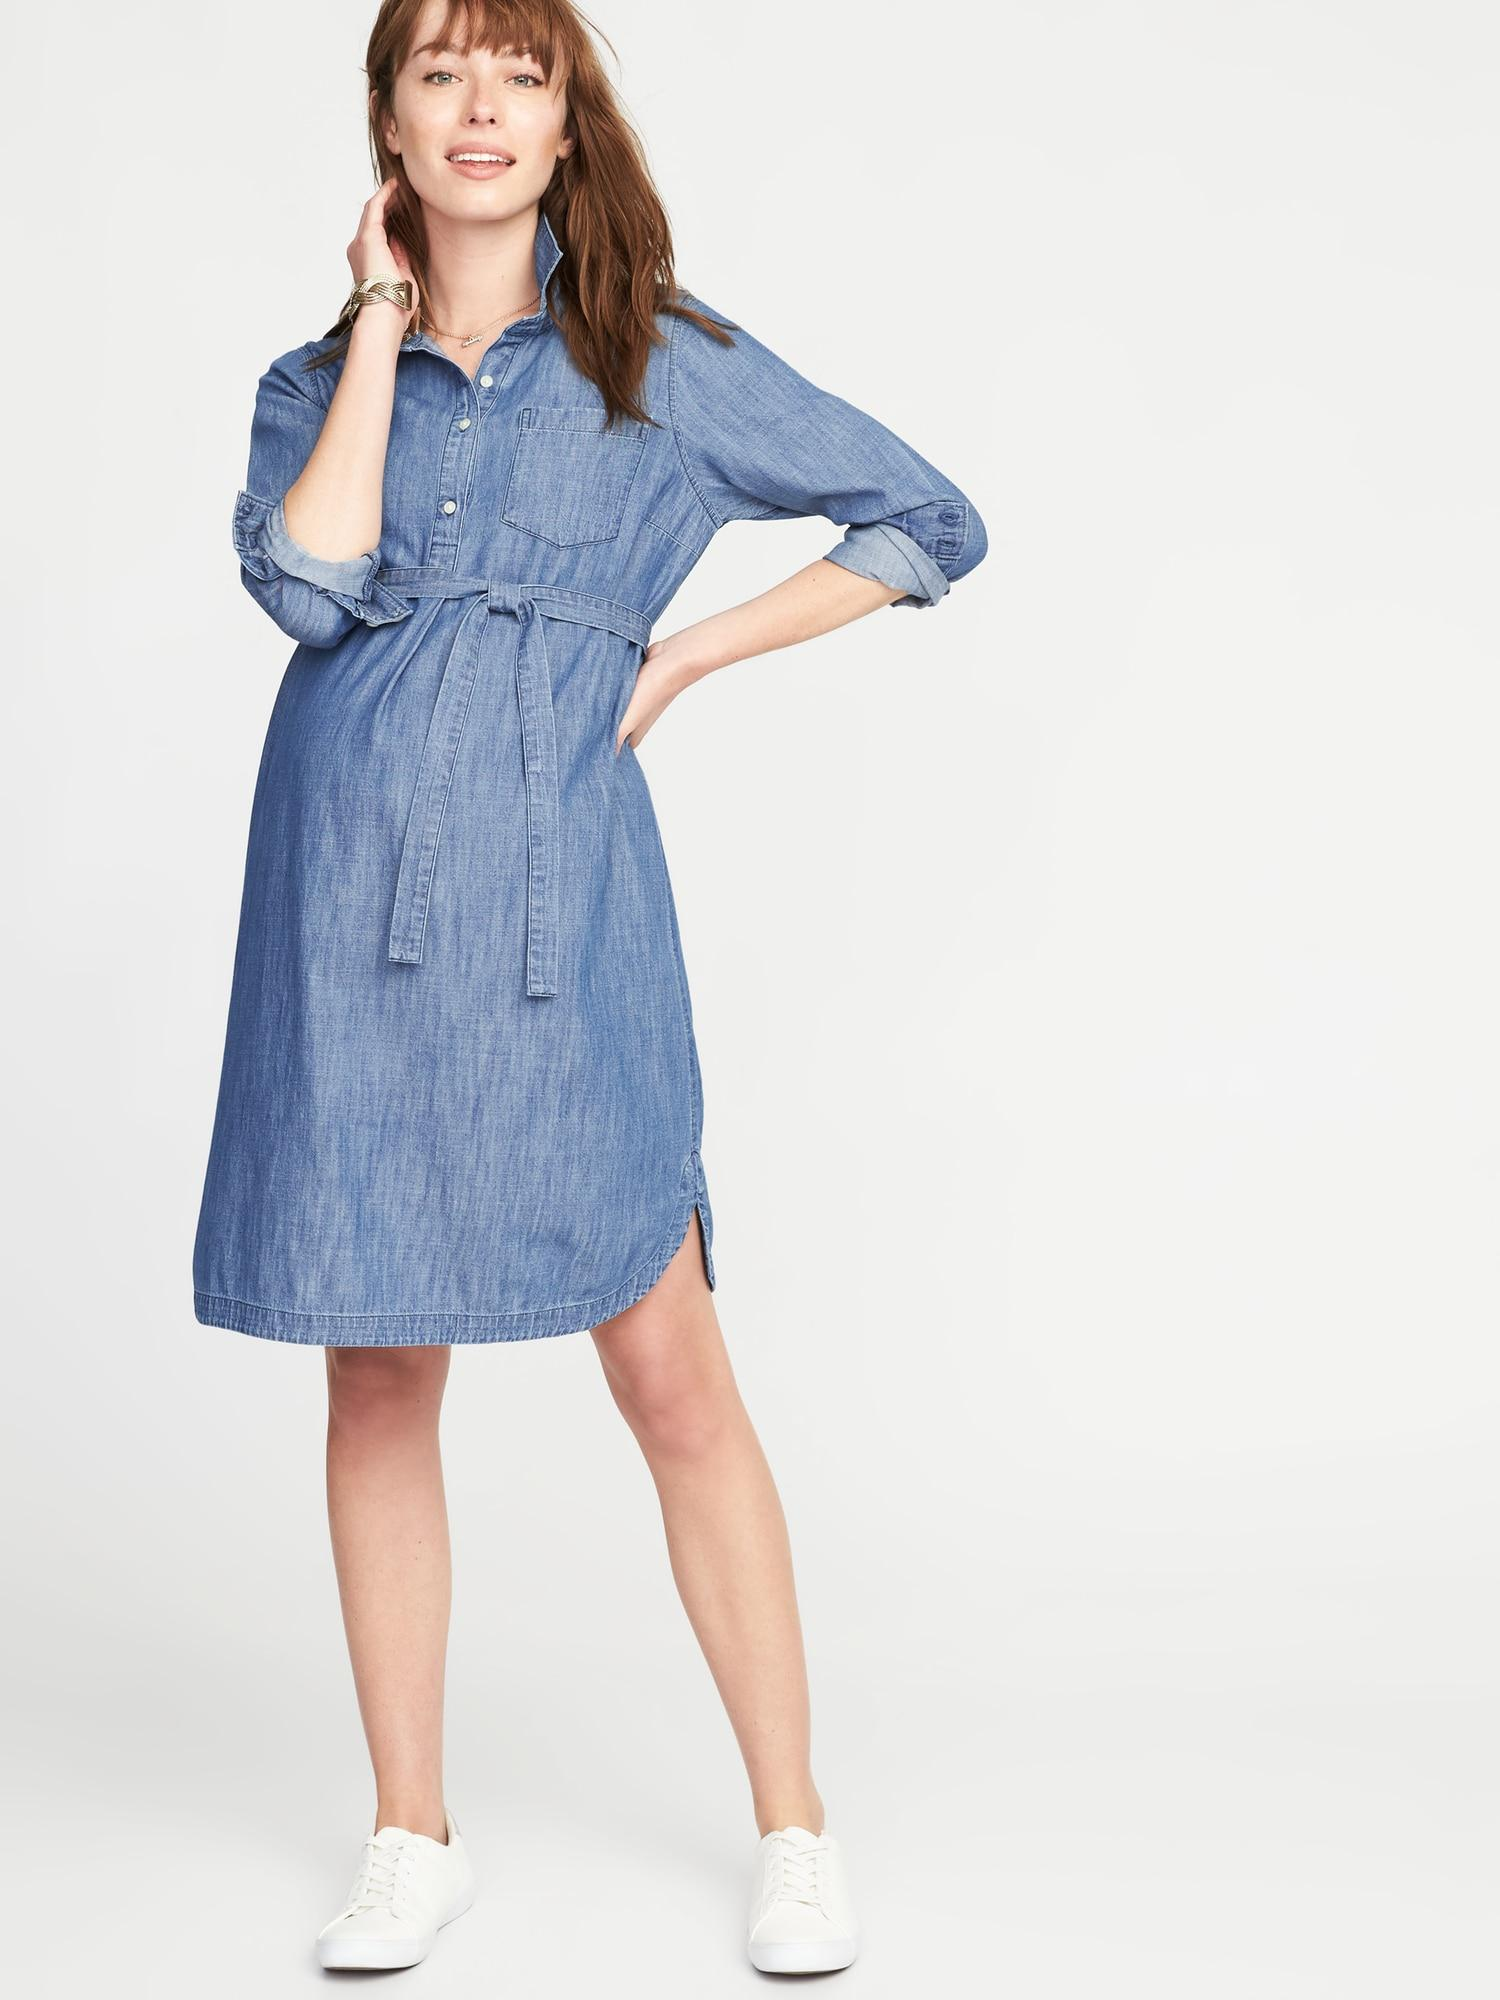 f9d7f44a9f23f Lyst - Old Navy Maternity Tie-belt Chambray Shirt Dress in Blue